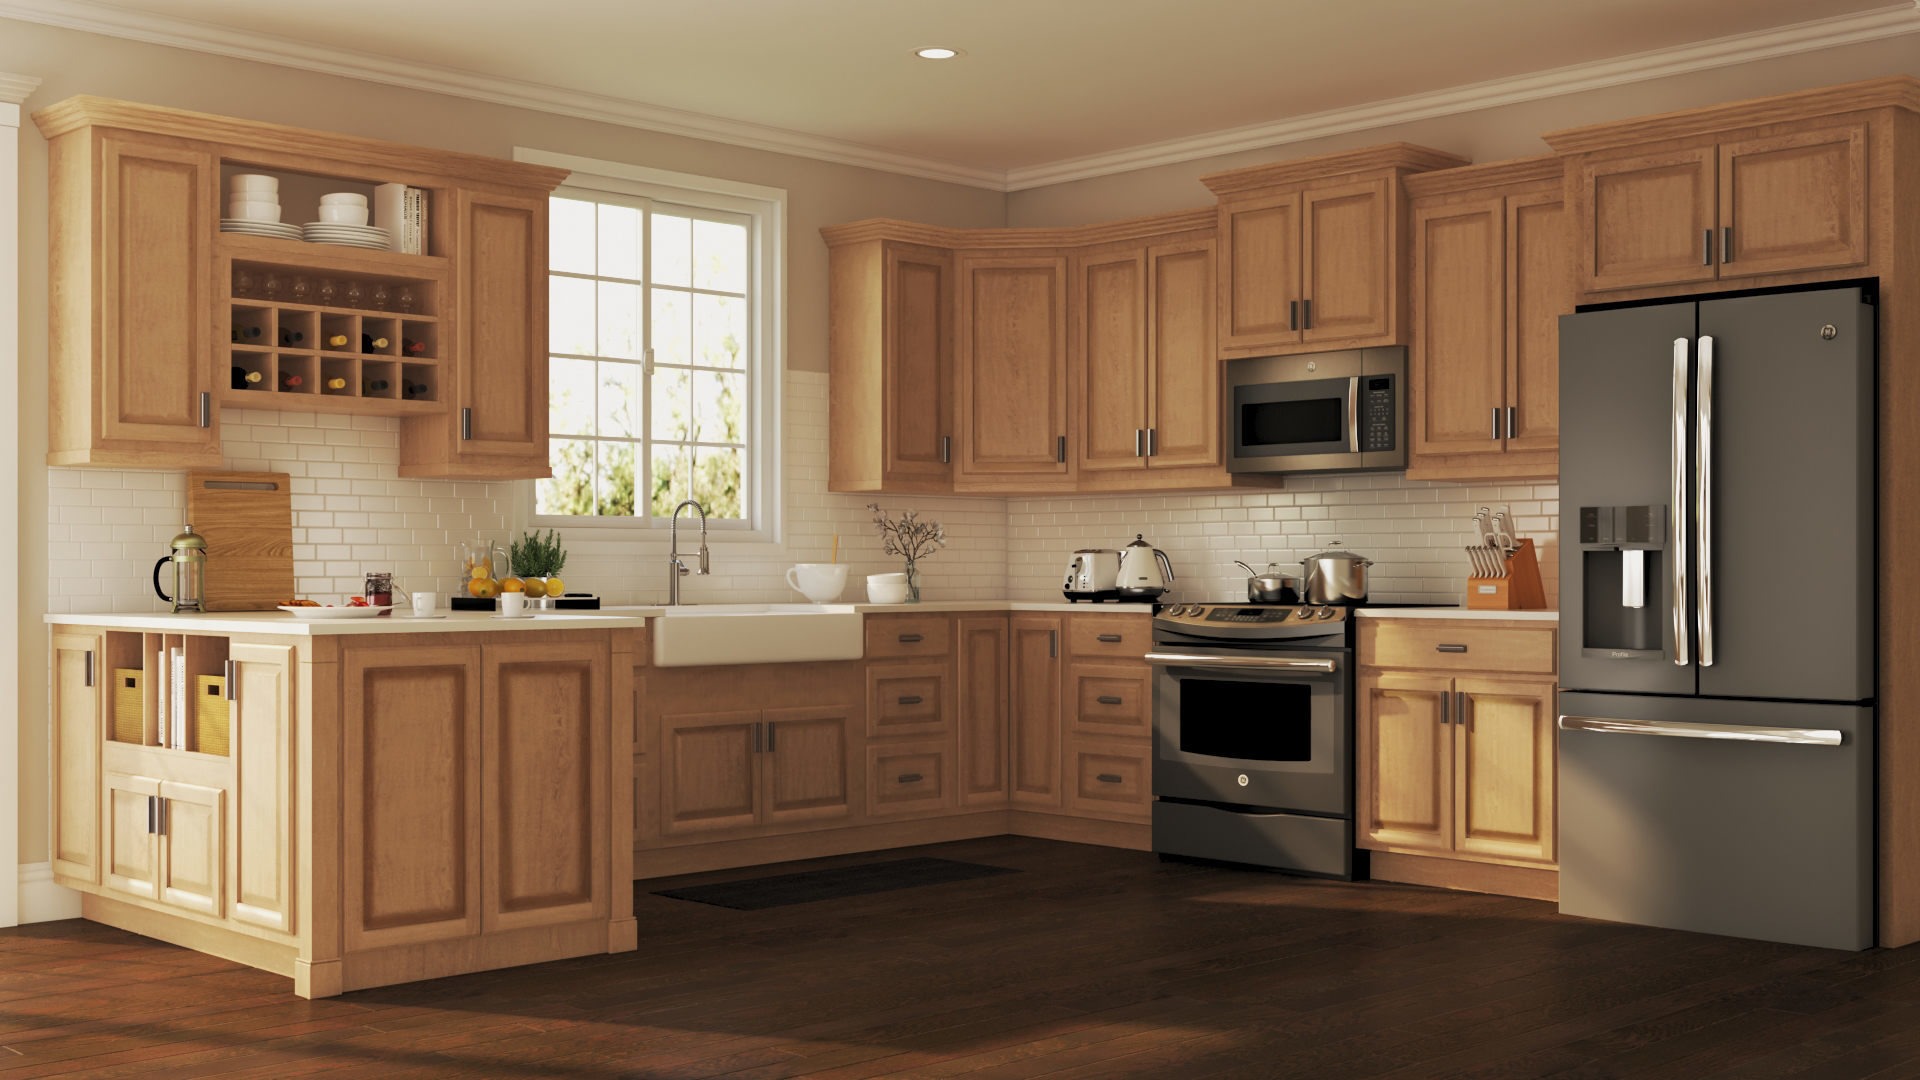 painting oak kitchen cabinets ideas hampton wall kitchen cabinets in medium oak kitchen 7353